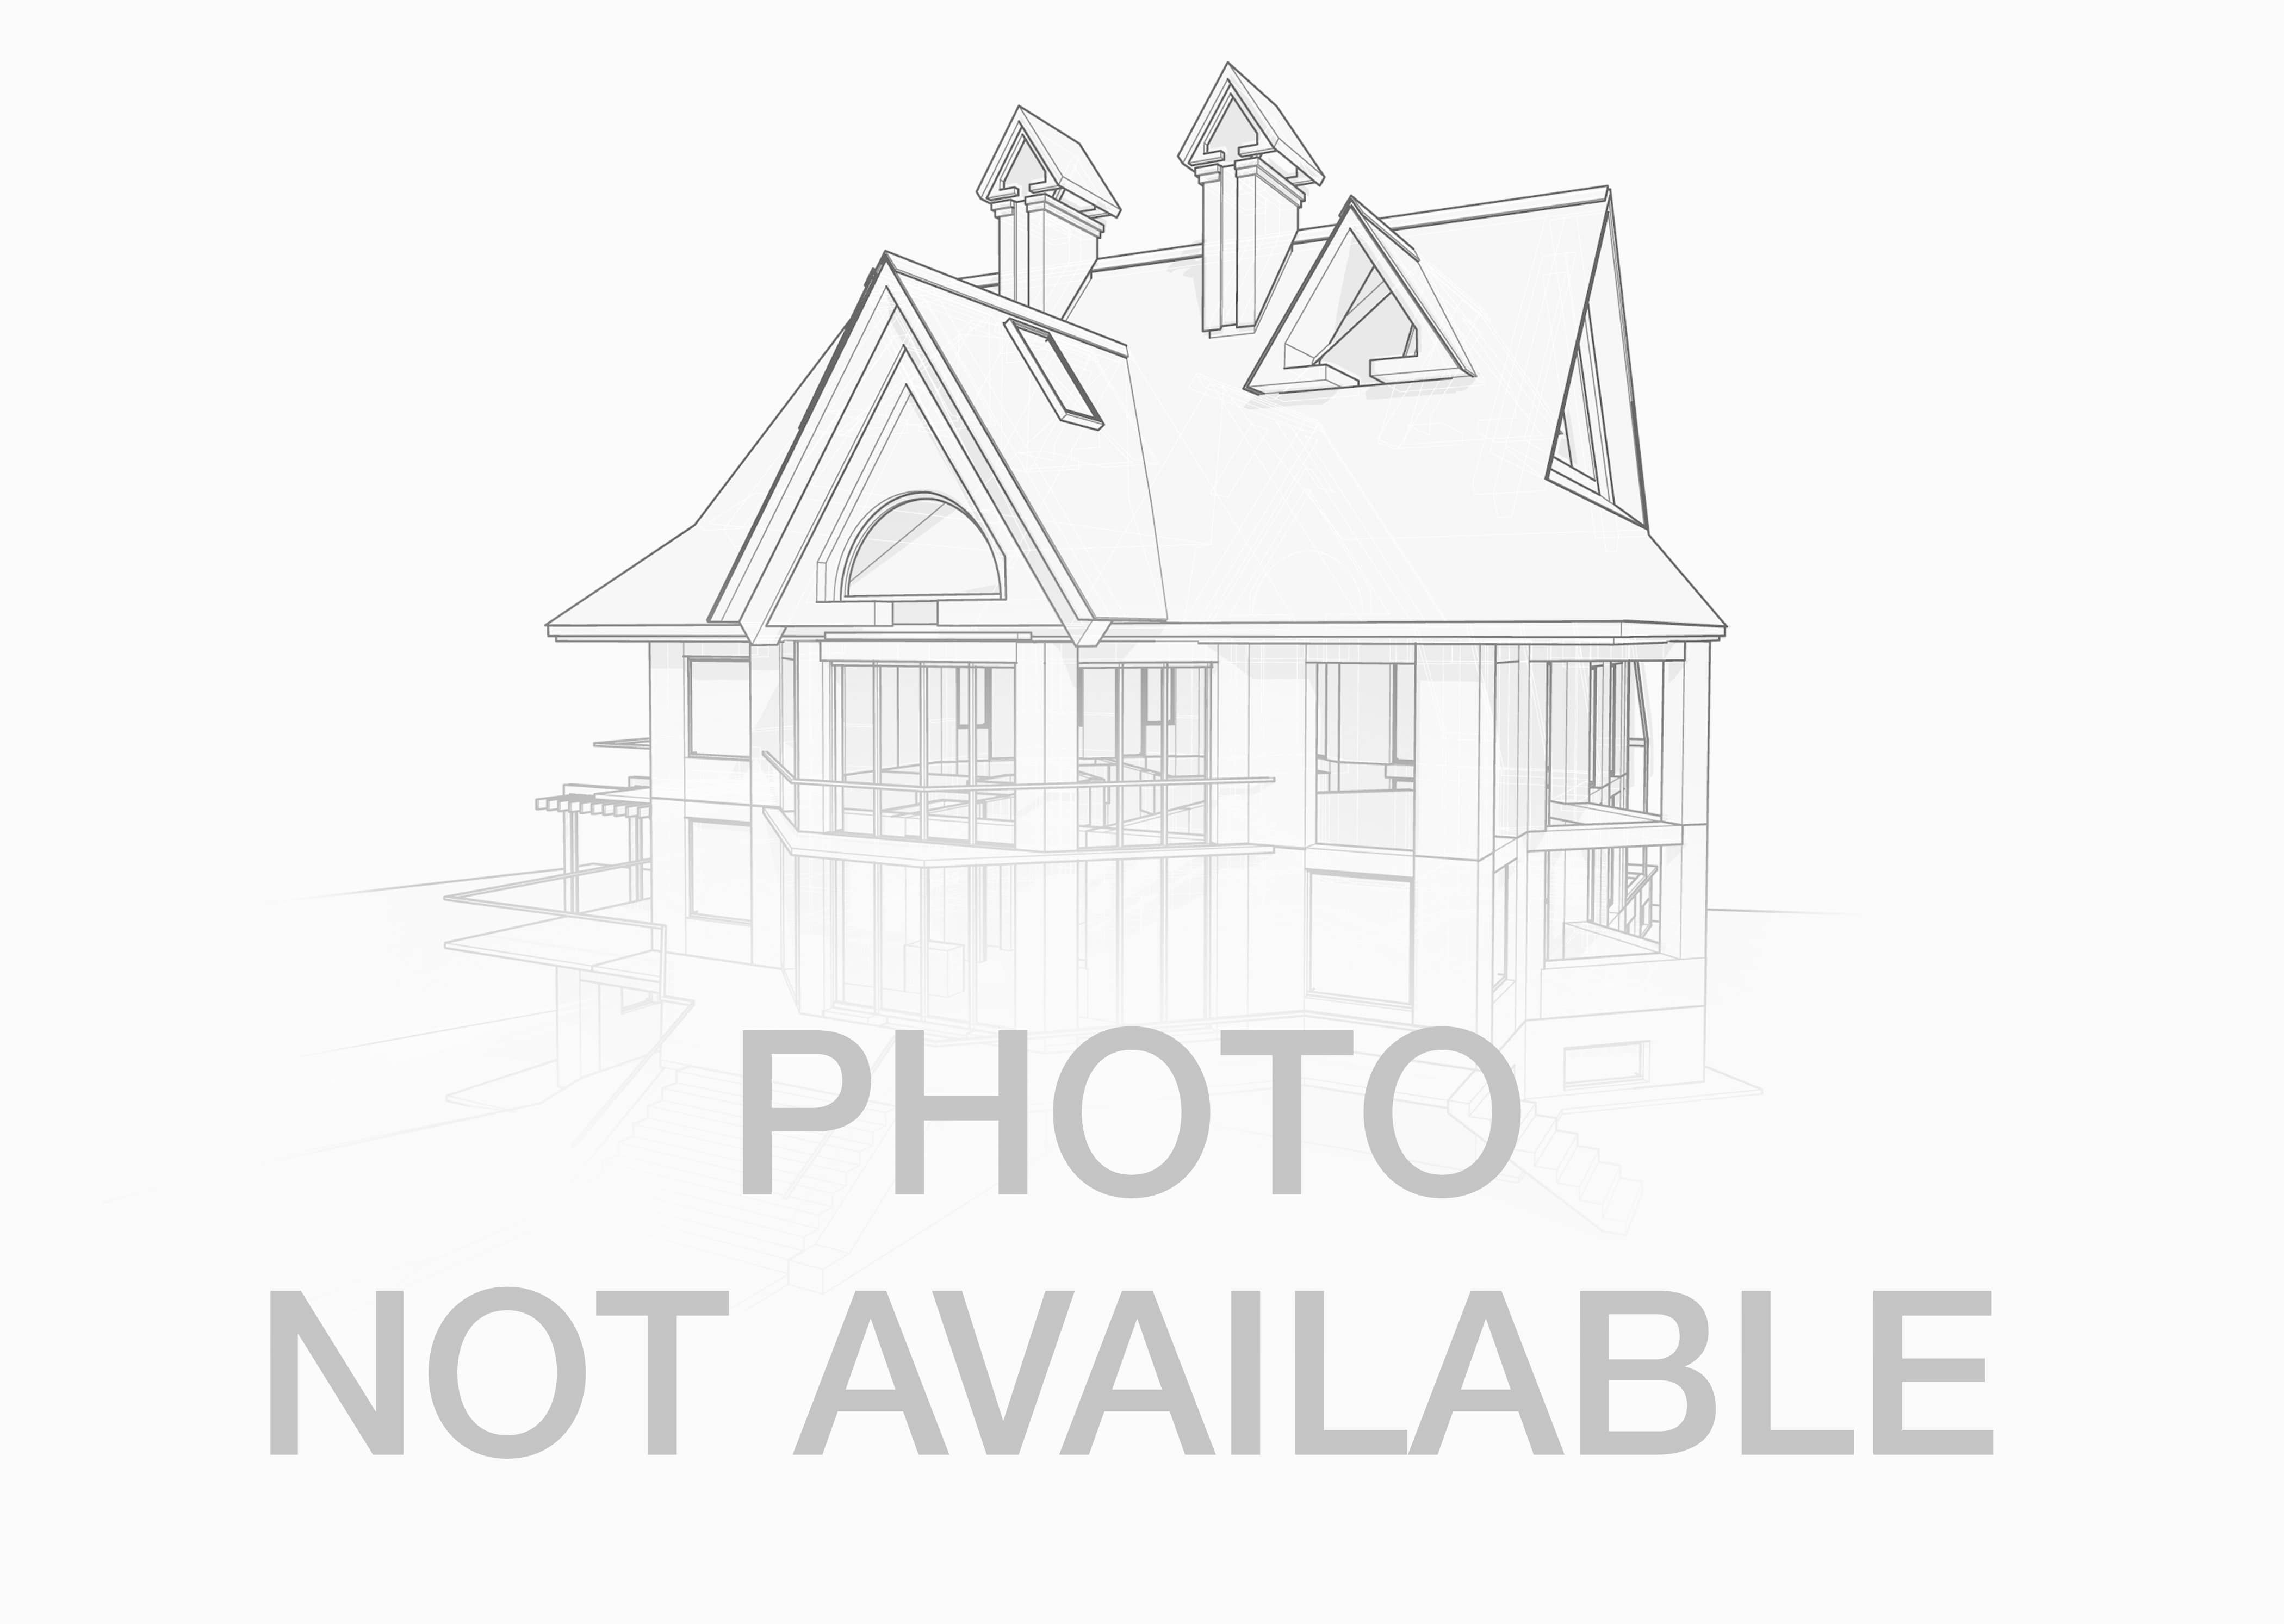 1679 Lakeview Sq Northeast, Bolivar, Oh 44612 - MLS ID 4006502 on